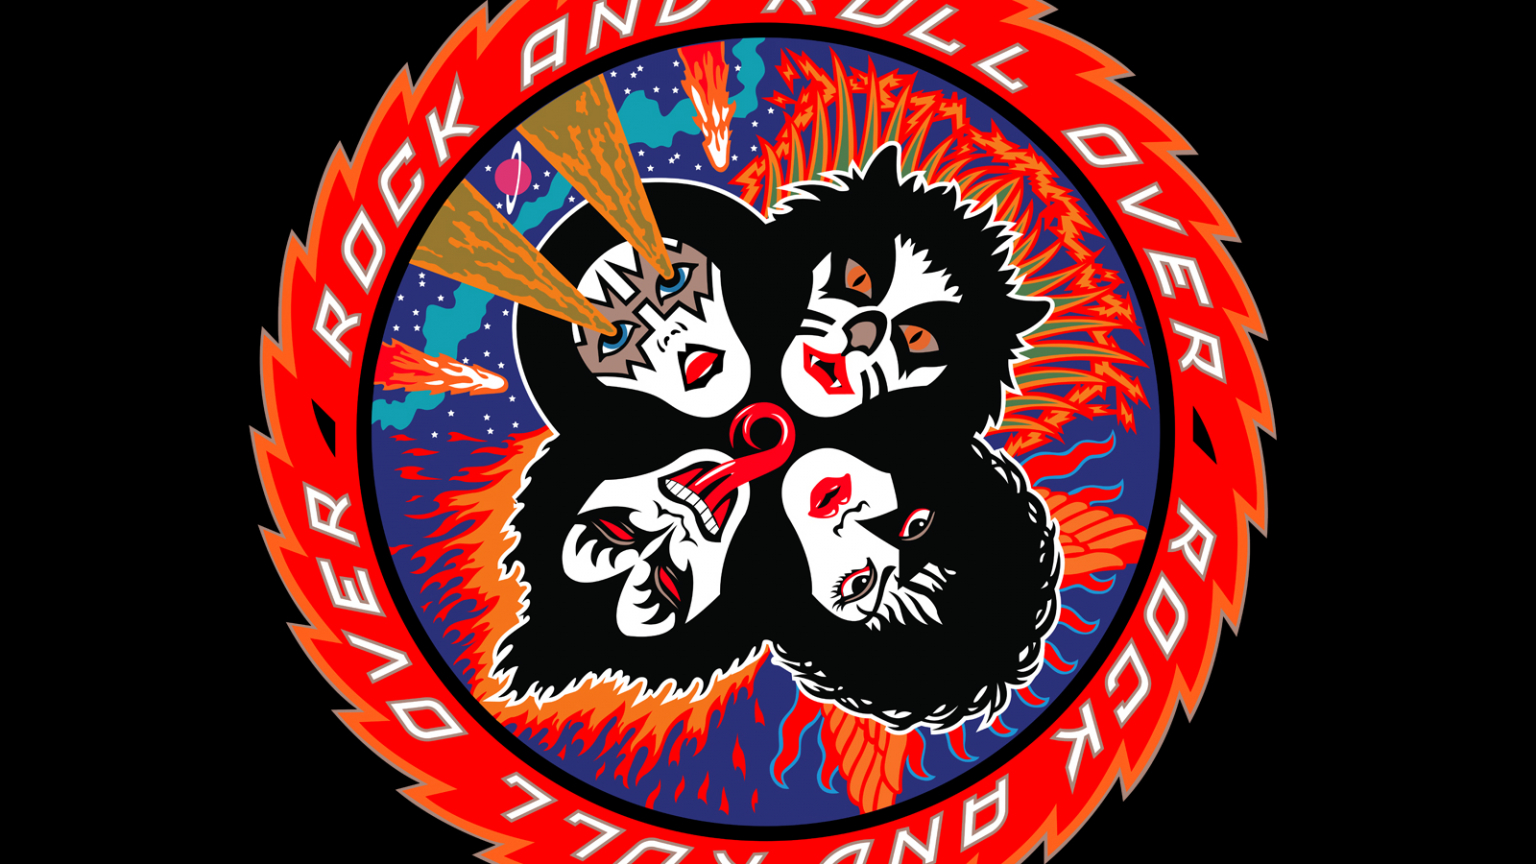 Free Download Kiss Rock And Roll Over Wallpaper Rock N Roll All